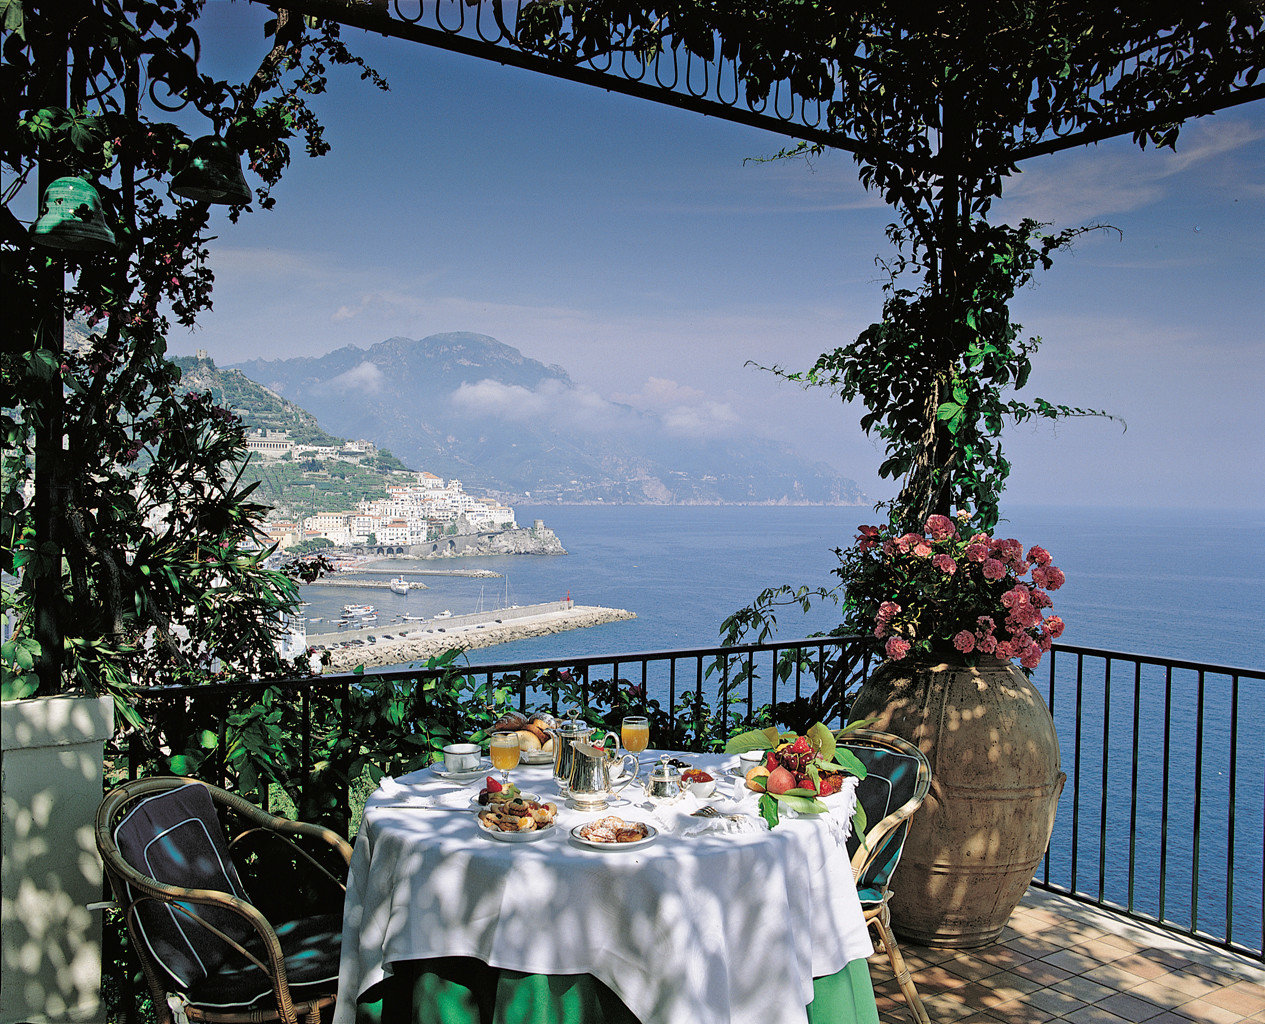 Balcony Cultural Dining Drink Eat Jetsetter Guides Outdoors Romance Romantic Scenic views Trip Ideas tree outdoor overlooking vacation estate flower Deck